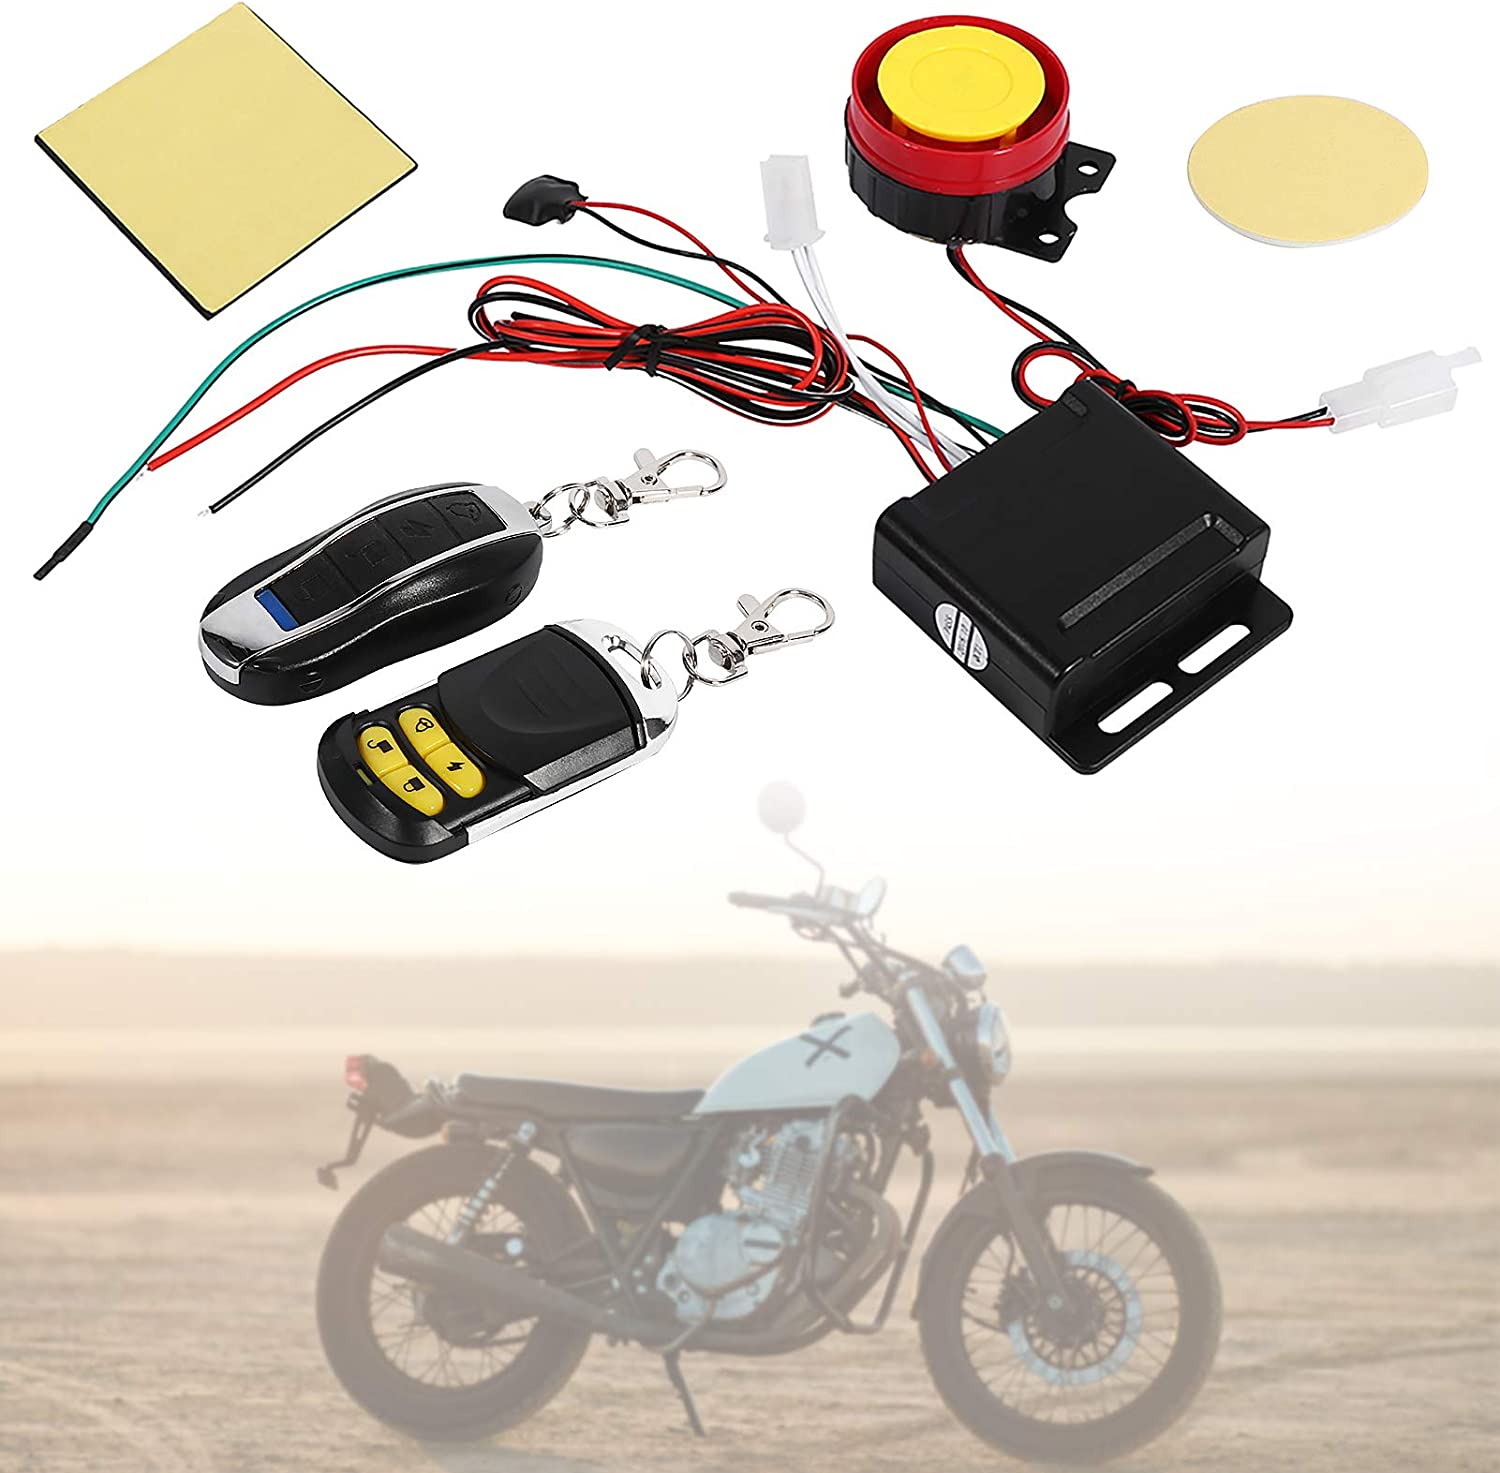 Details about  /Motorcycle Bicycle Anti-theft Alarm Wheel Disc Brake Lock Waterproof Sturdy Safe